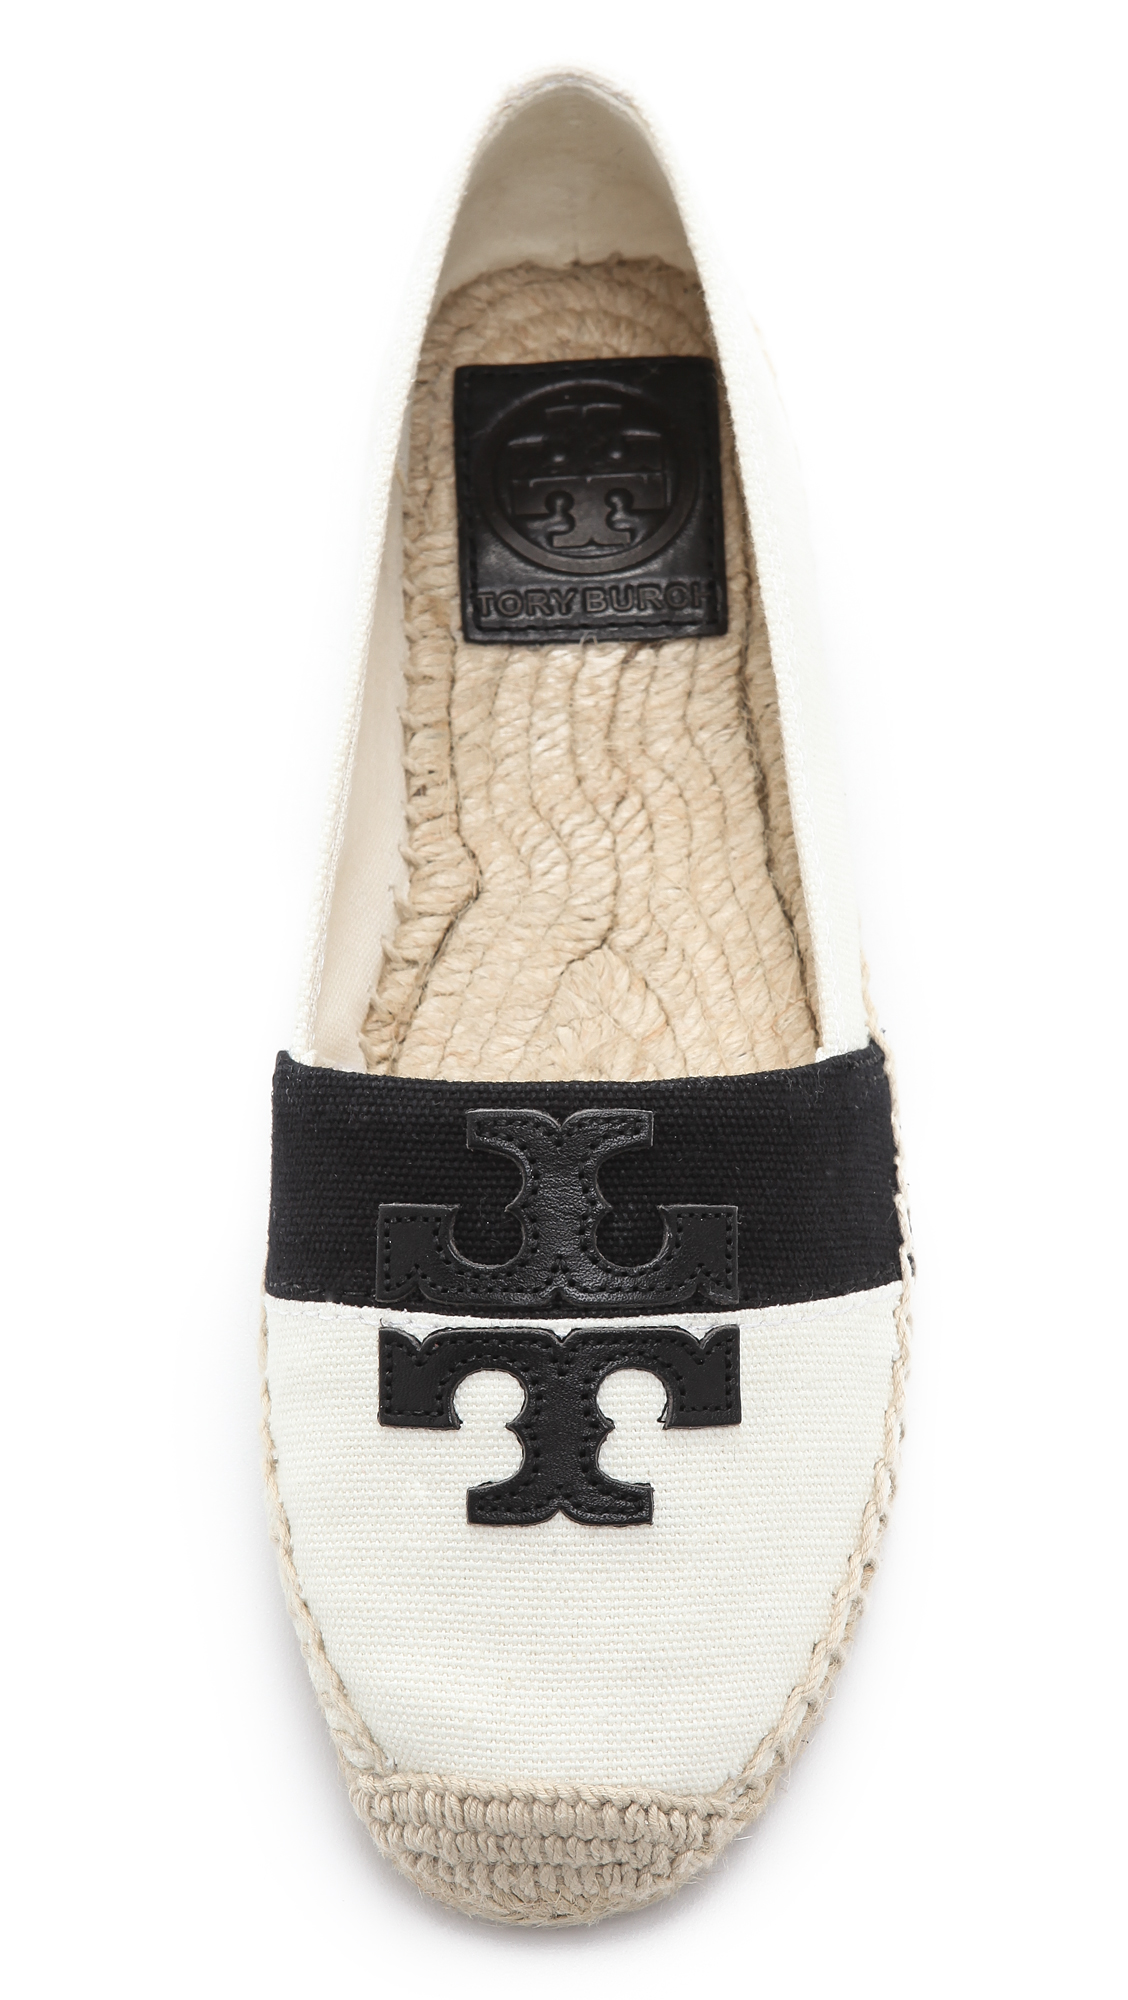 70c101a8f14 Tory Burch Weston Espadrilles